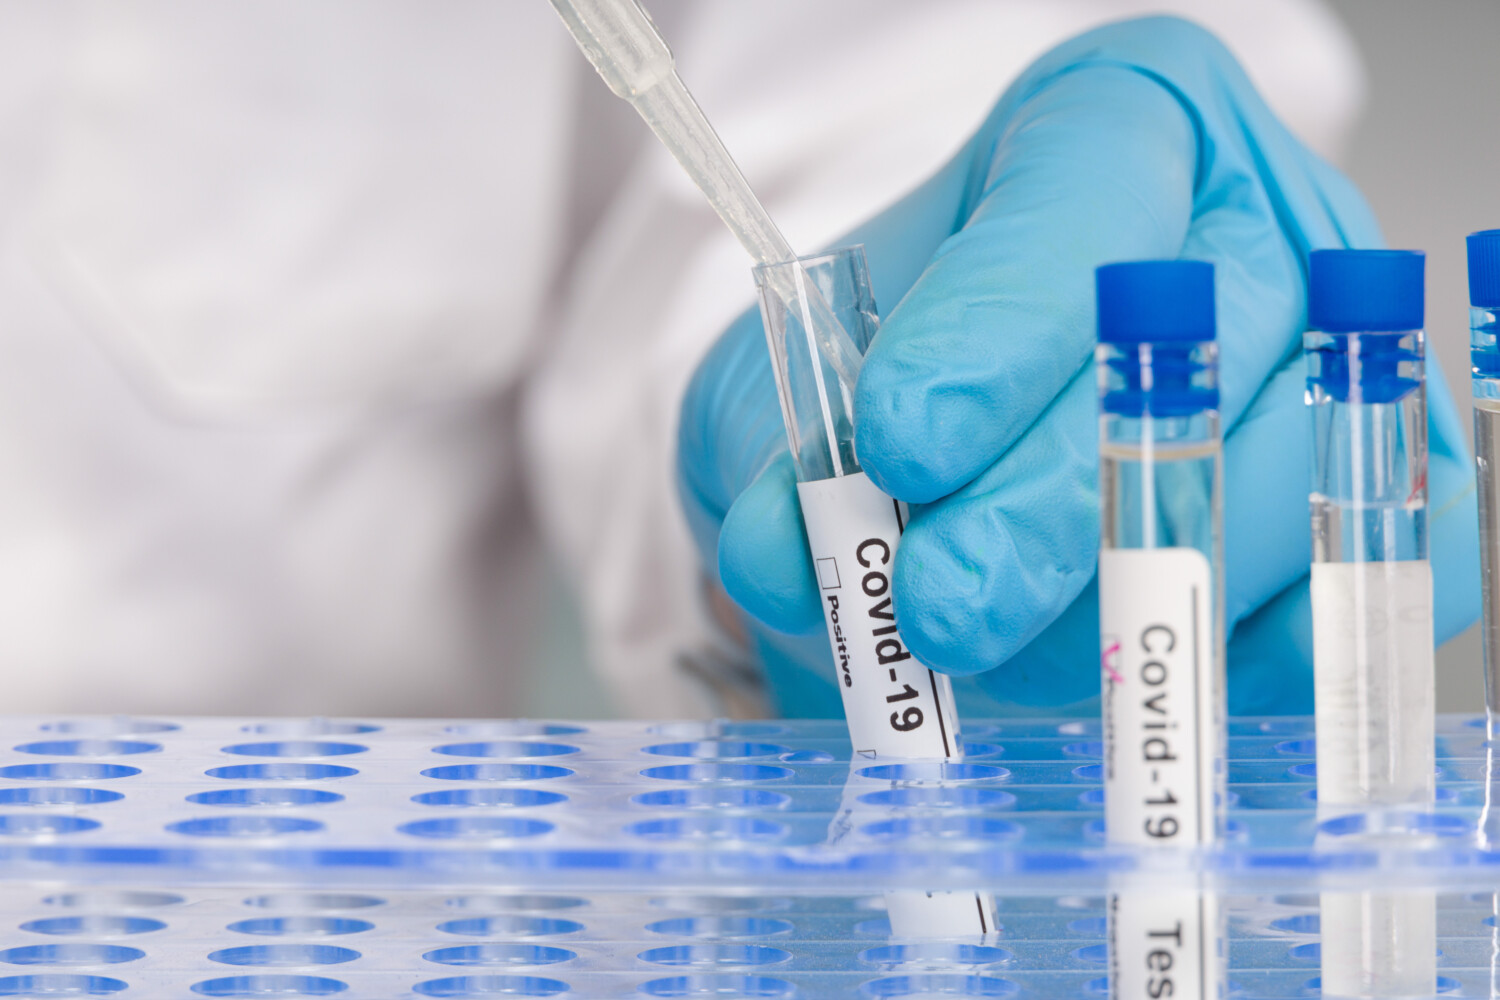 London-based fit-out and refurbishments company BW's COVID-19 antibody tests reveal that 31.25% of employees have had the virus